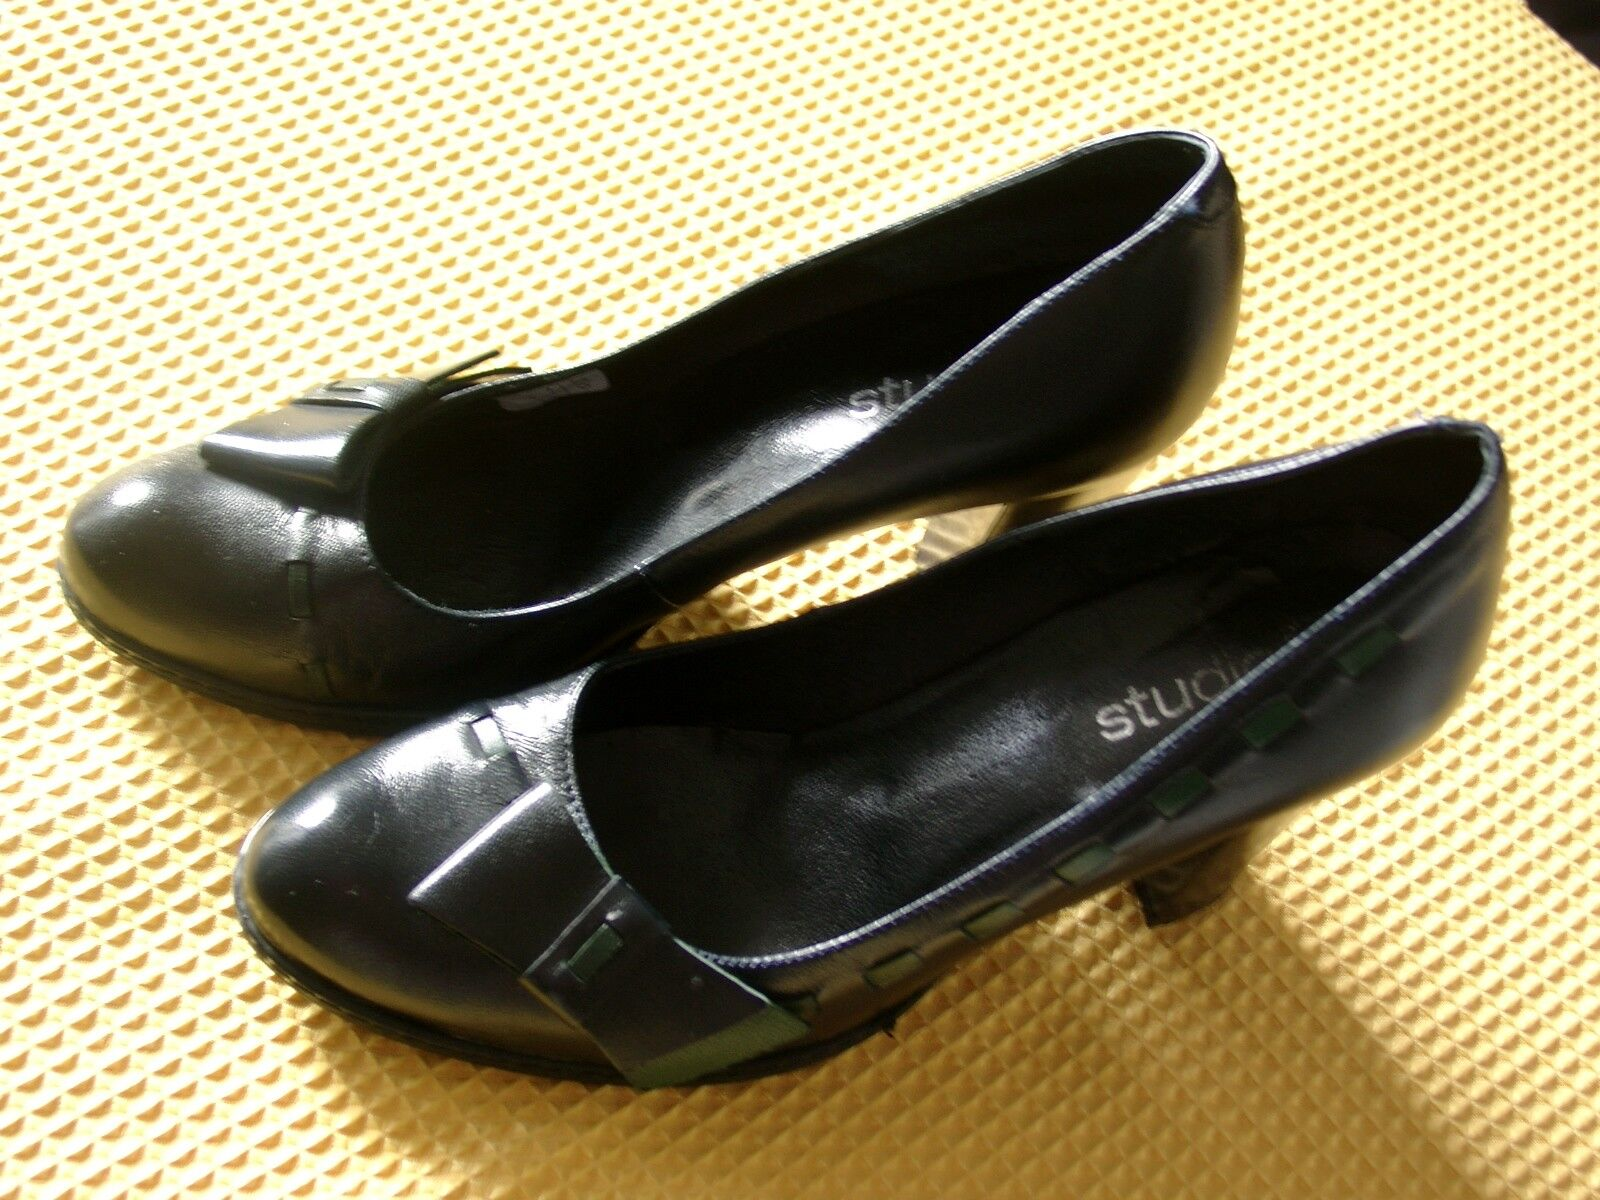 Trachten- Pumps High Heels Made in in in Spain Leder Studio W Gr. 38 nur 1x getragen 45f0d4